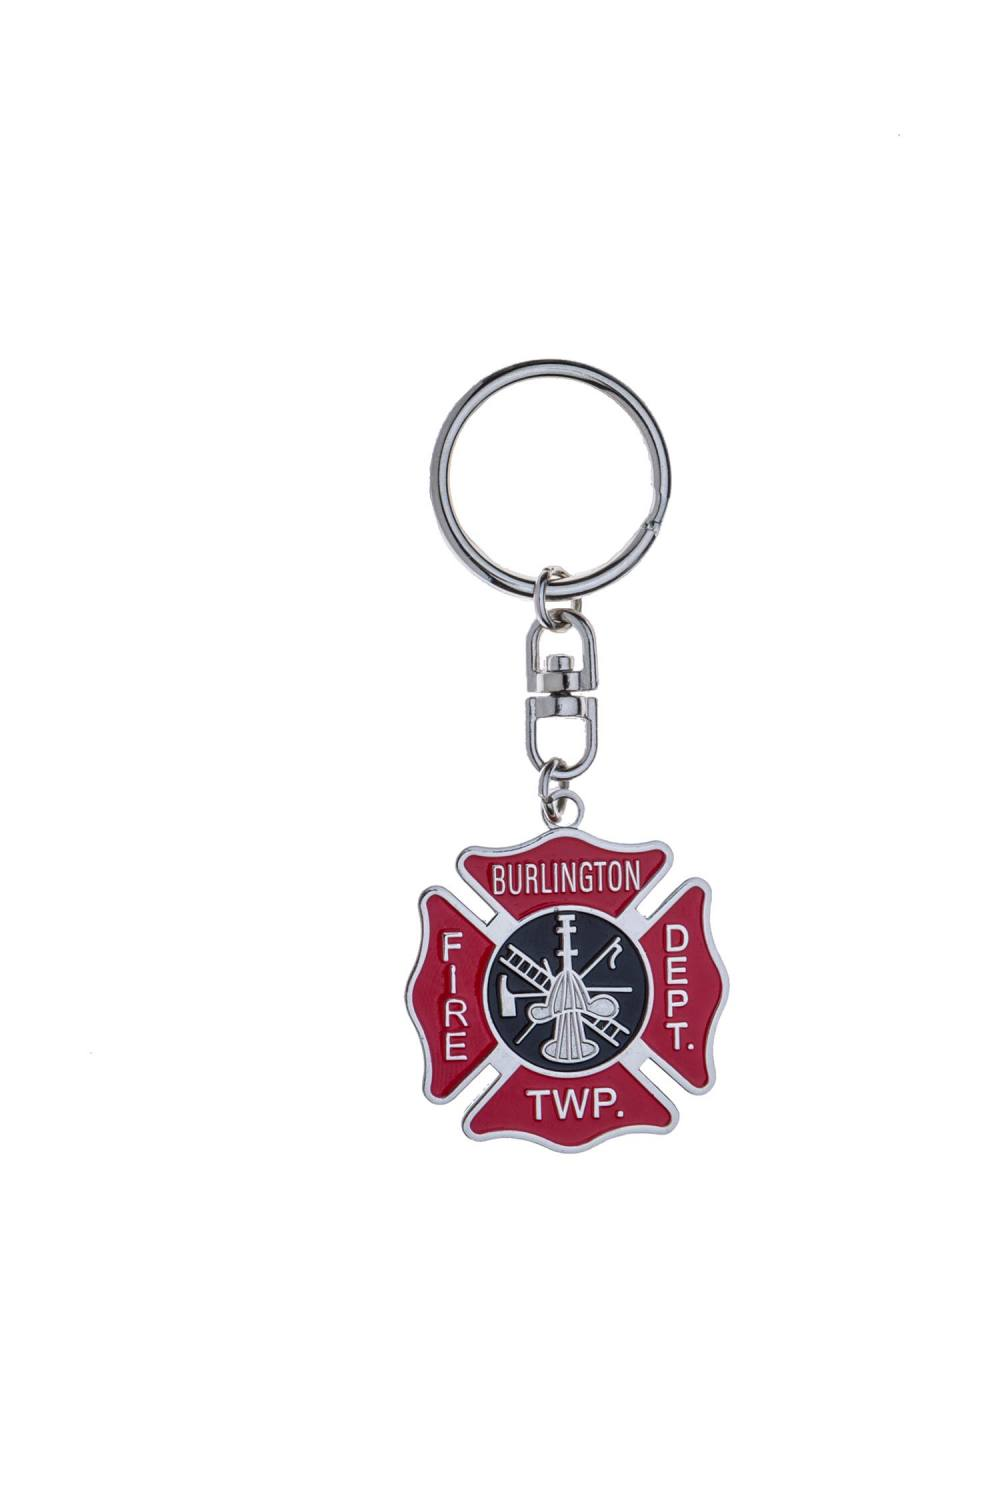 Fire scramble metal keychain